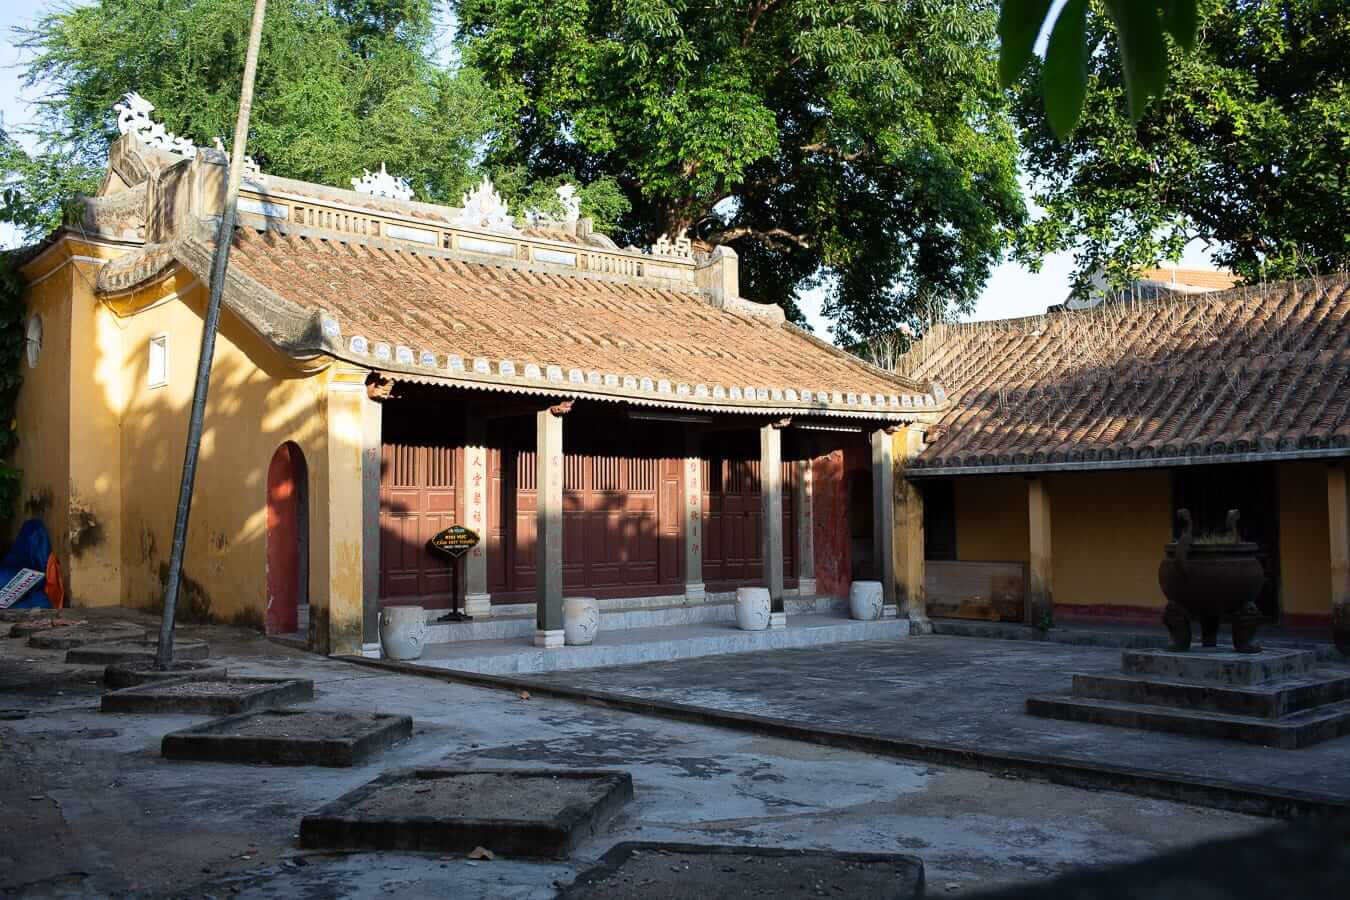 Hoi An Old Town historic buildings: 3-day itinerary in Hoi An